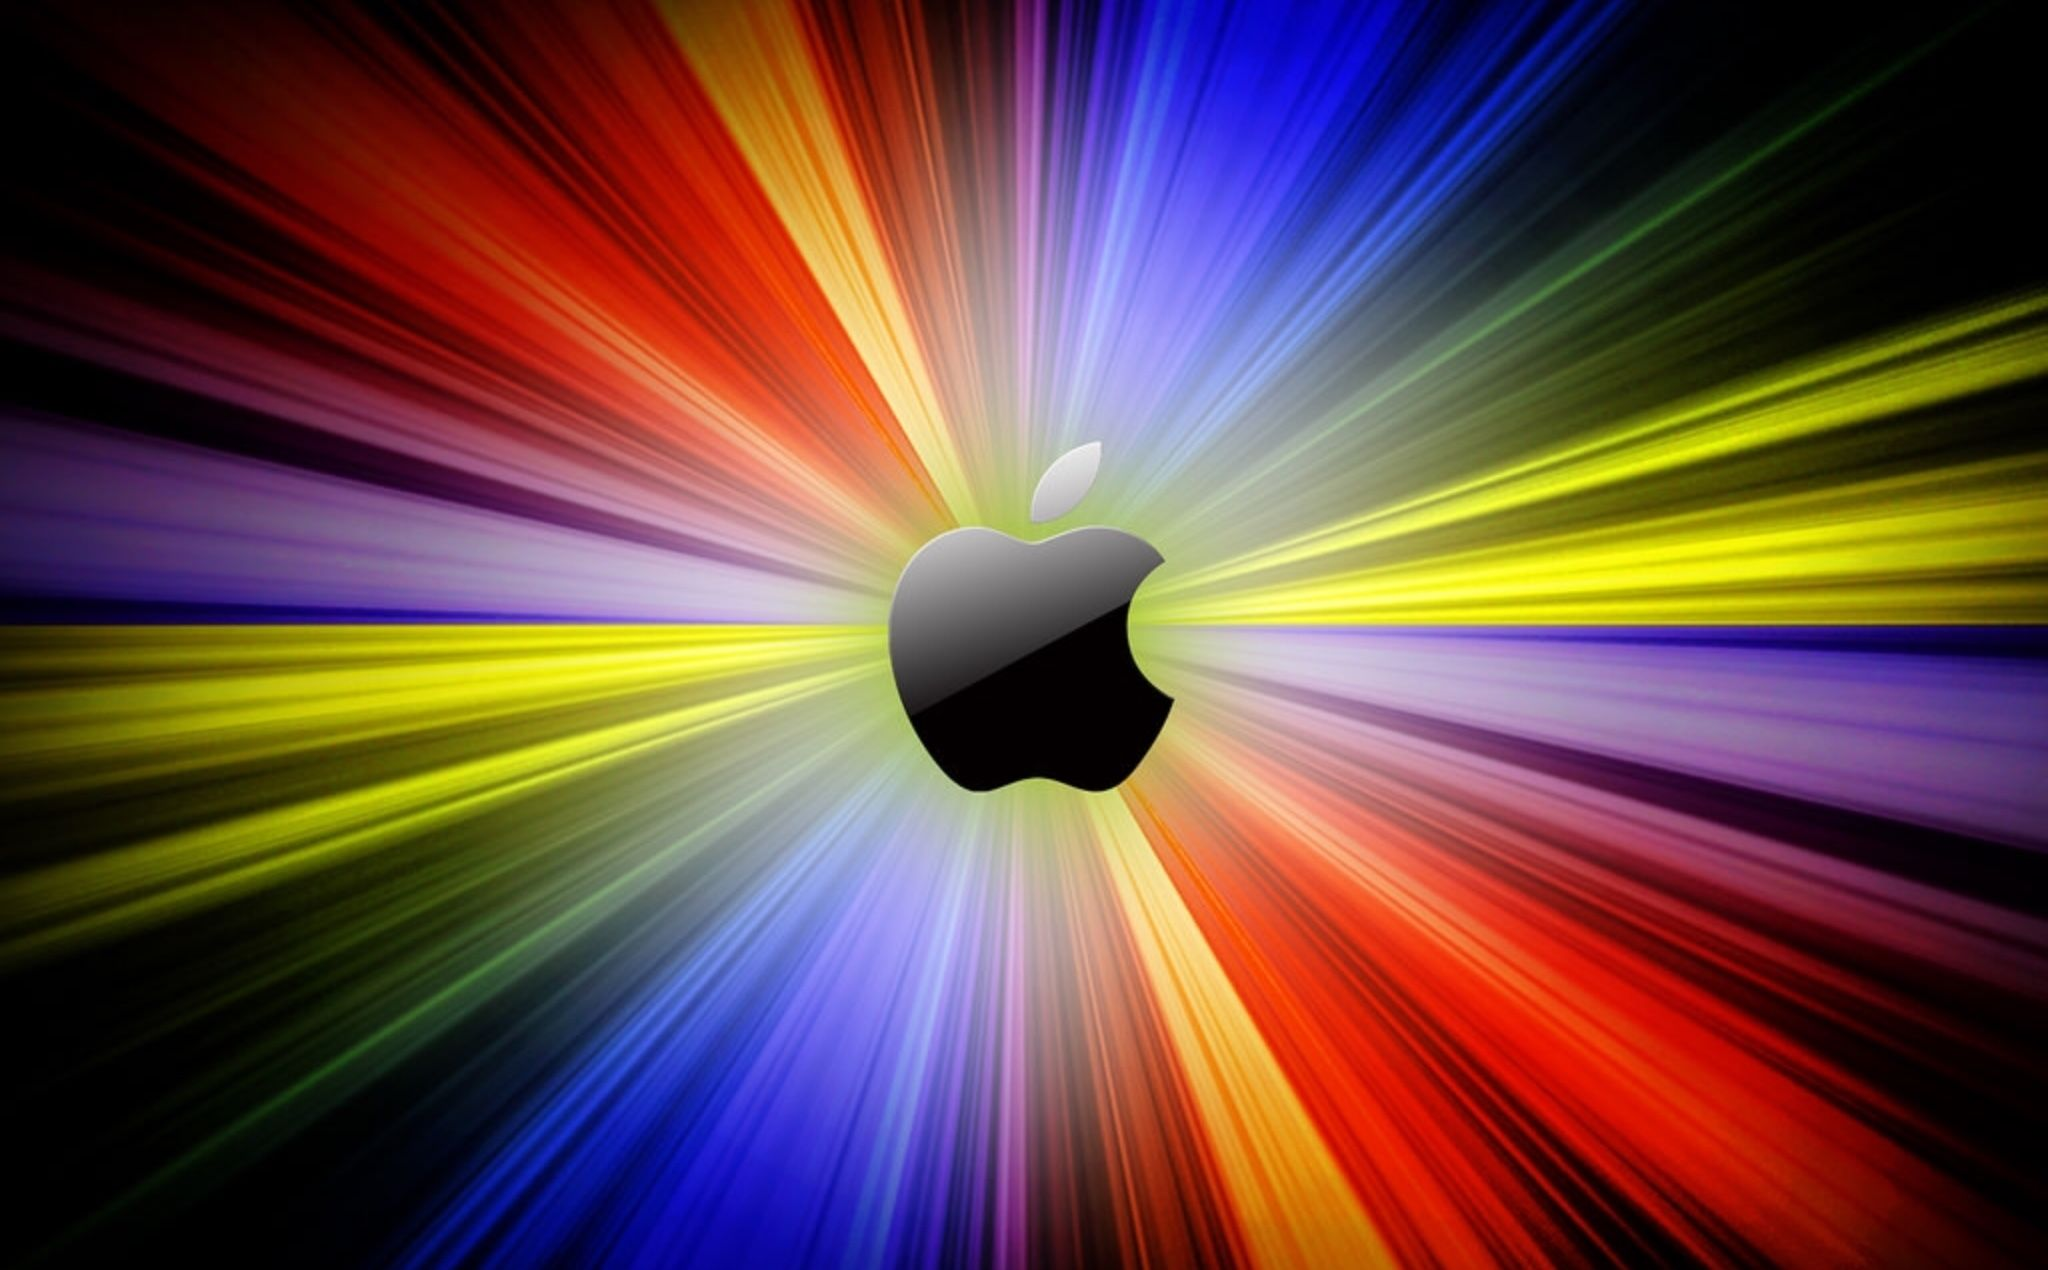 Glowing Apple Wallpaper (With images) Apple logo